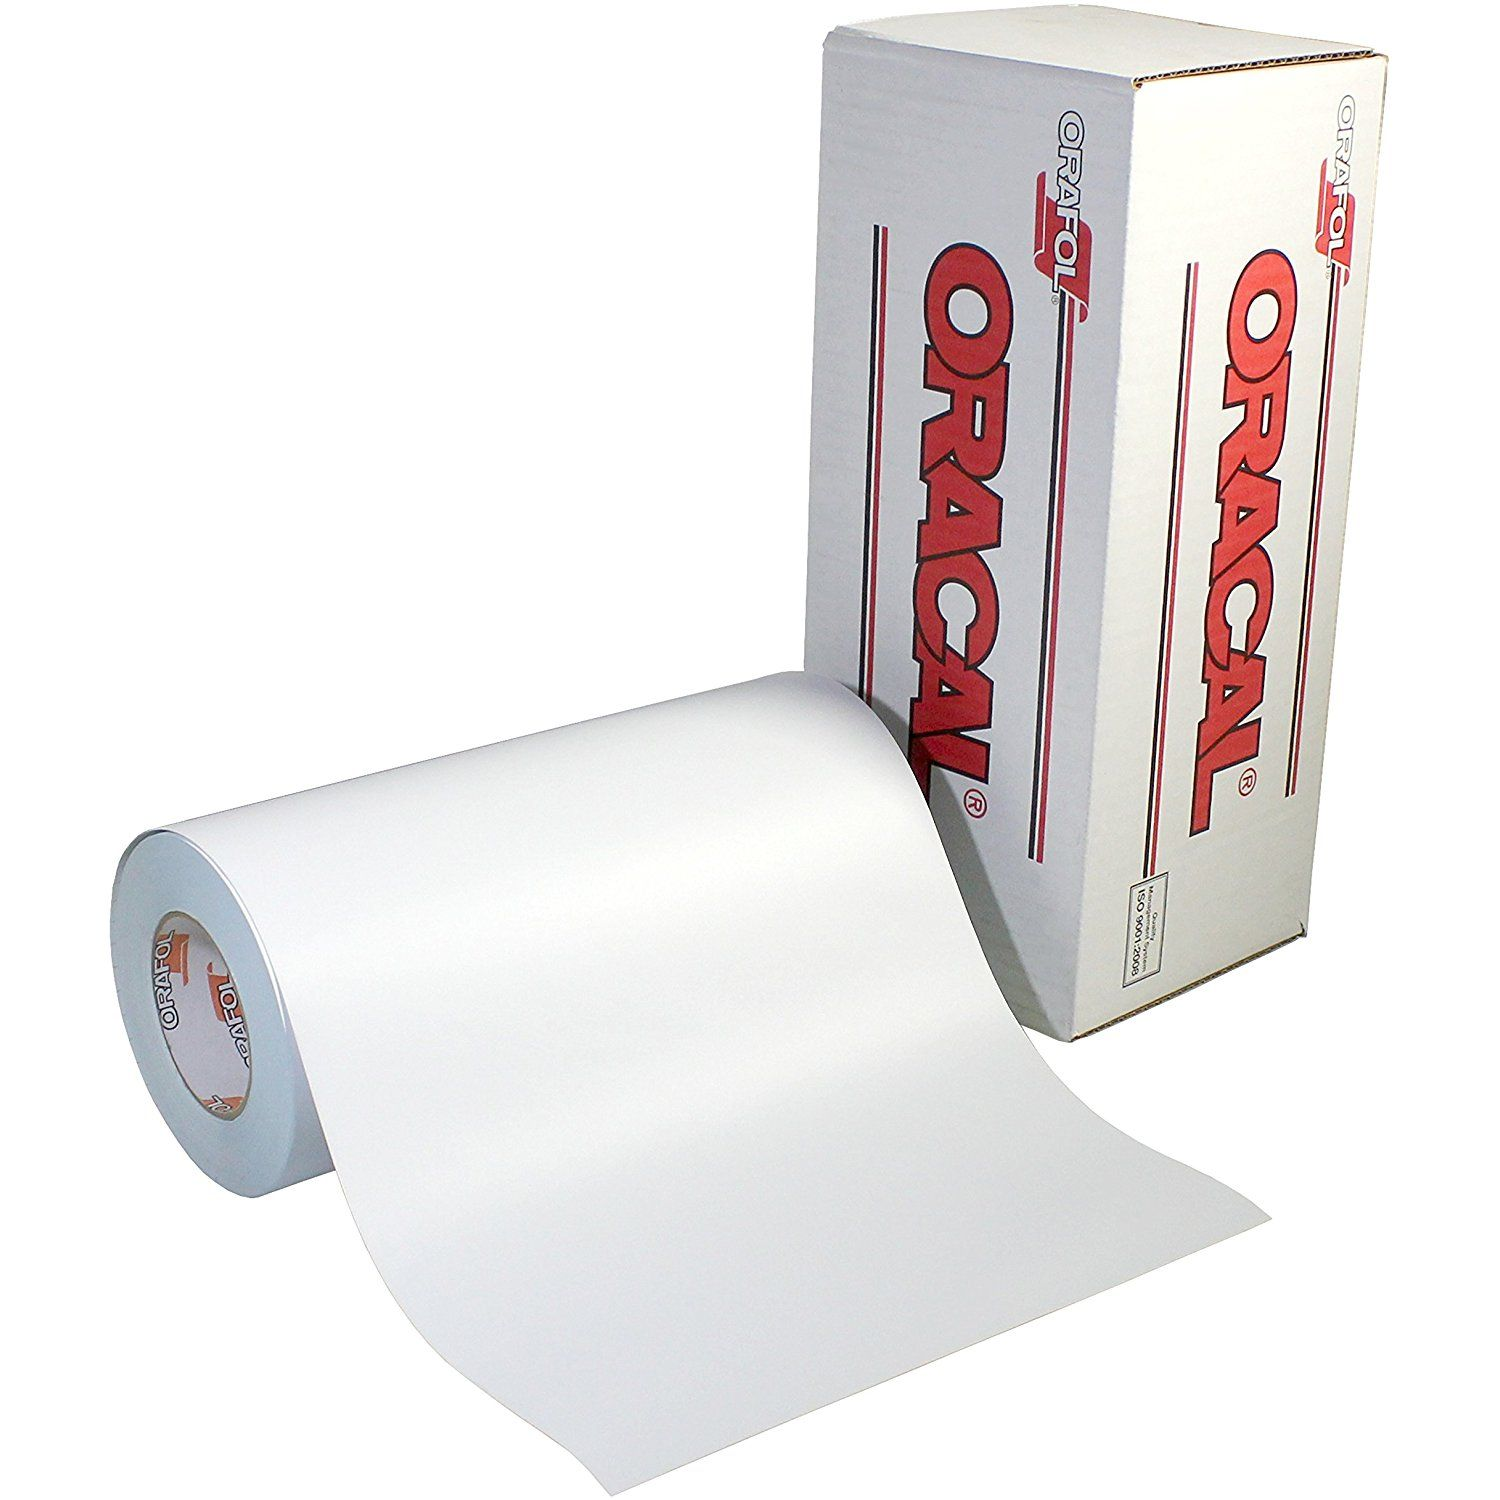 Oracal 651 Matte Permanent Vinyl 12 Inch X 6 Feet White For More Information Visit Image Link This Is An Affiliate Lin Permanent Vinyl Vinyl Rolls Vinyl